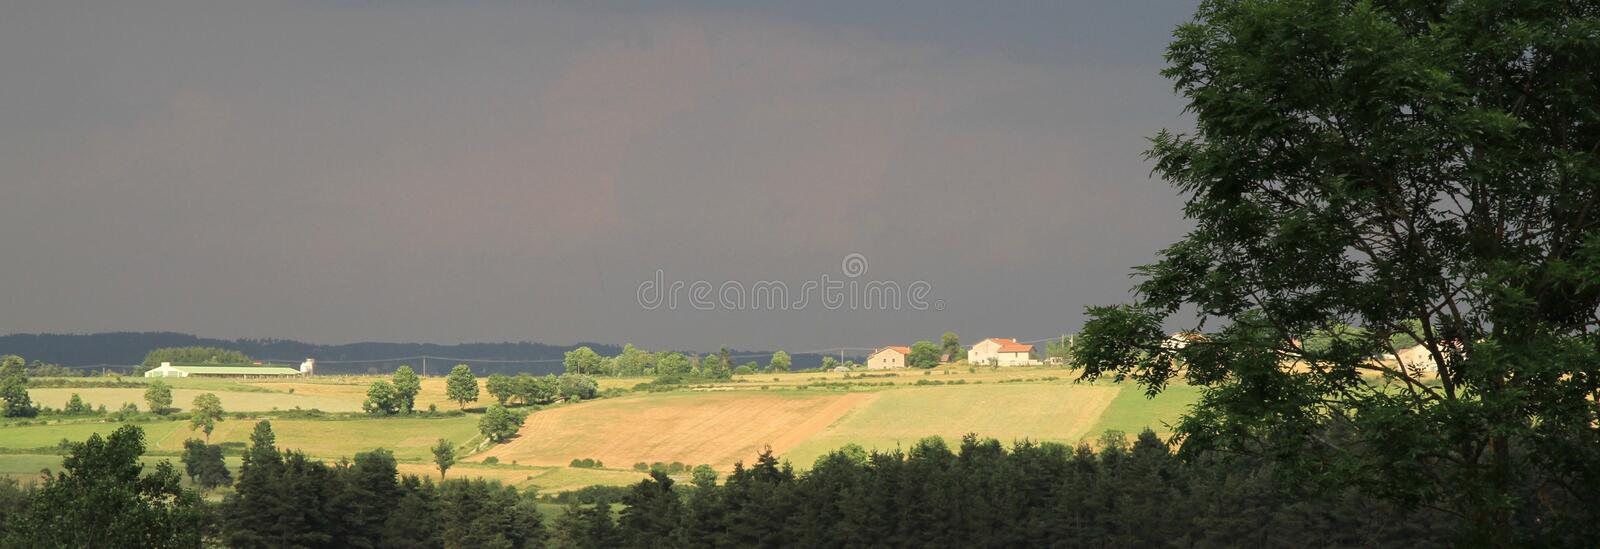 Sun lit fields after a storm in the Auvergne in France. A landscape image with foreground trees to sun lit fields and dark skies in the background royalty free stock images